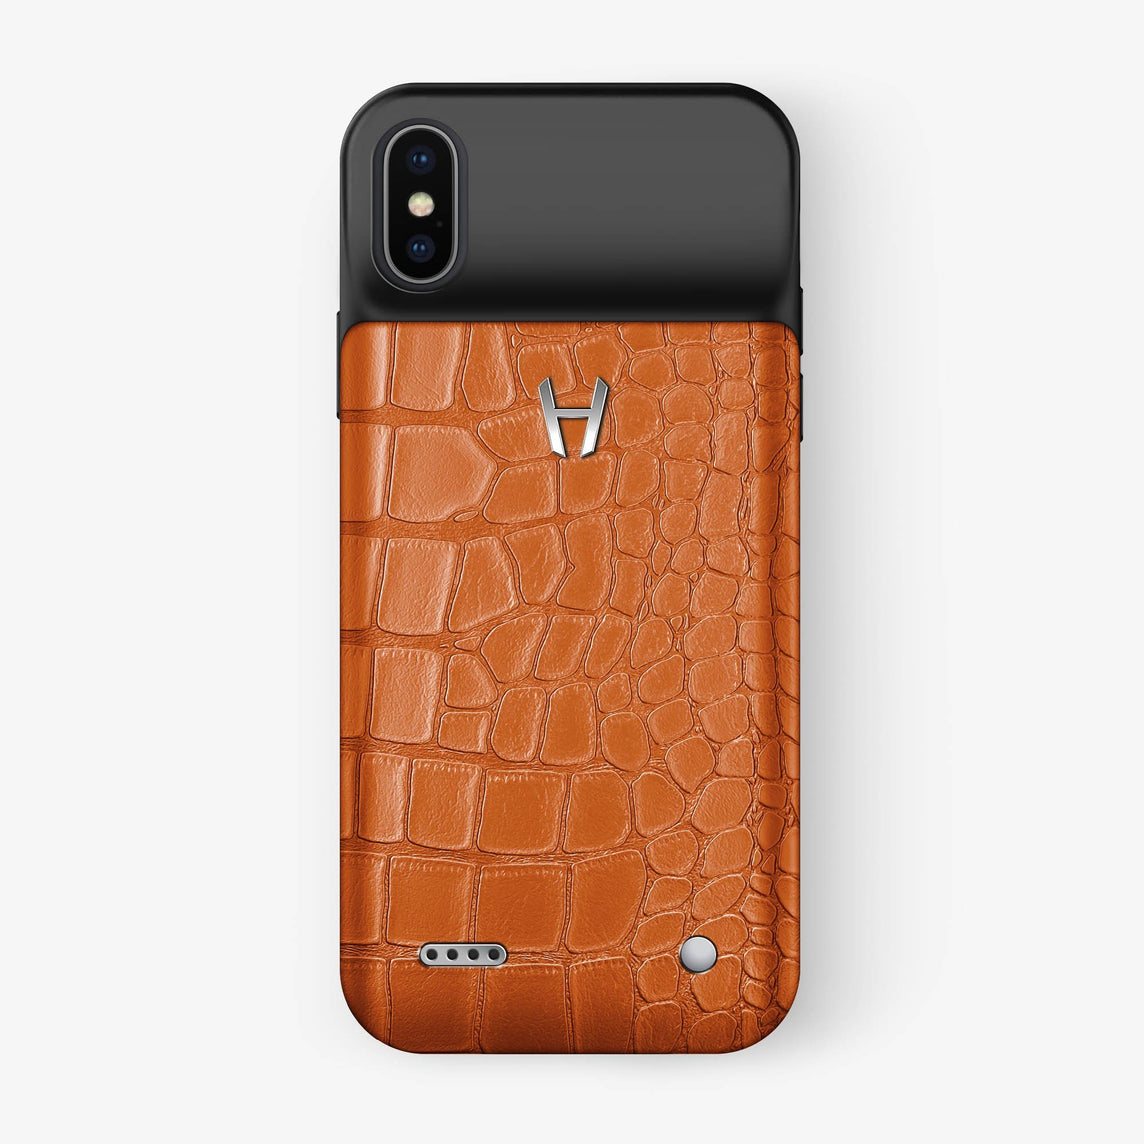 Alligator Battery Case iPhone X/Xs | Orange - Stainless Steel - Hadoro